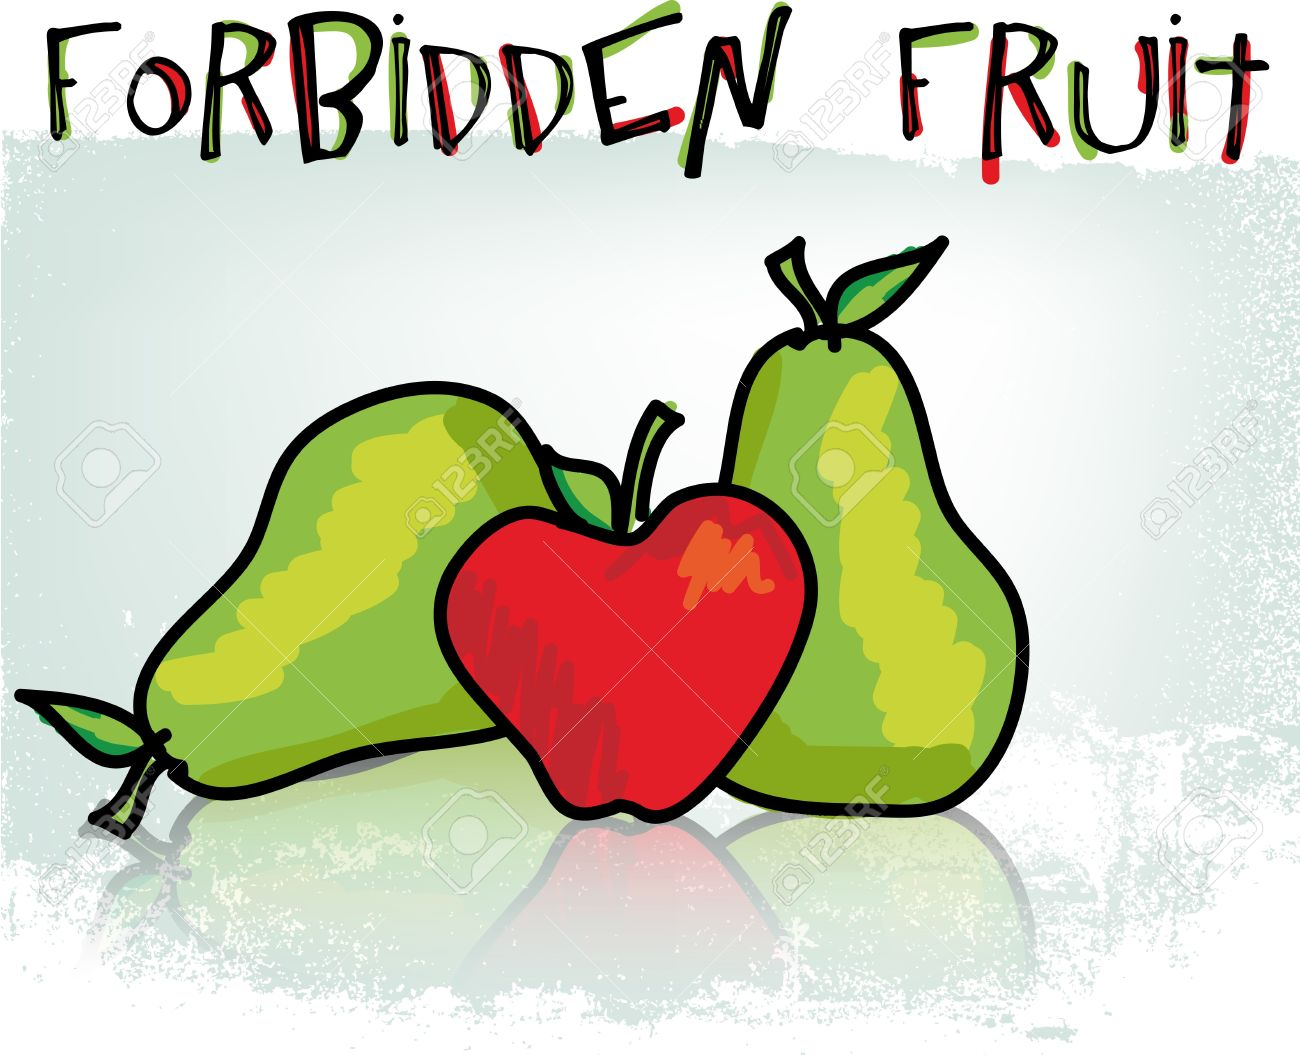 Forbidden Fruit. Vector Illustration Royalty Free Cliparts.